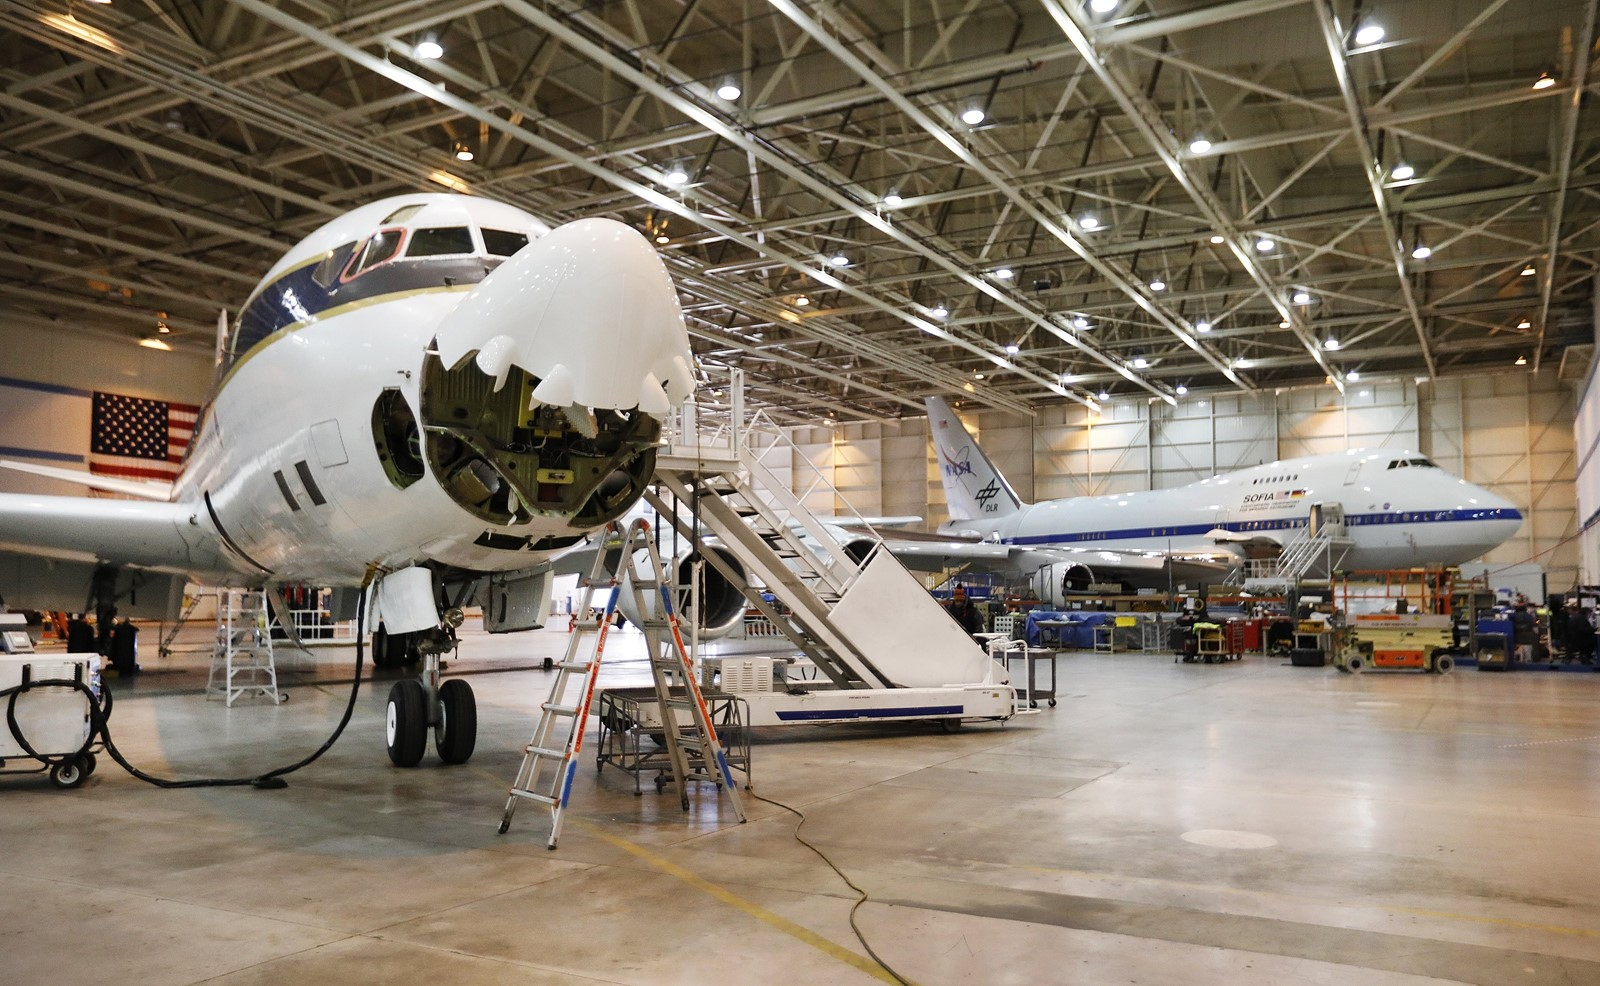 NASA uses a DC-8 based in Palmdale to analyze atmospheric samples. The U.S. EPA and Texas' counterpart rejected NASA's offer of the unique flying laboratory to study pollutants unleashed by Hurricane Harvey in Houston. — Photograph: Al Seib/Los Angeles Times.